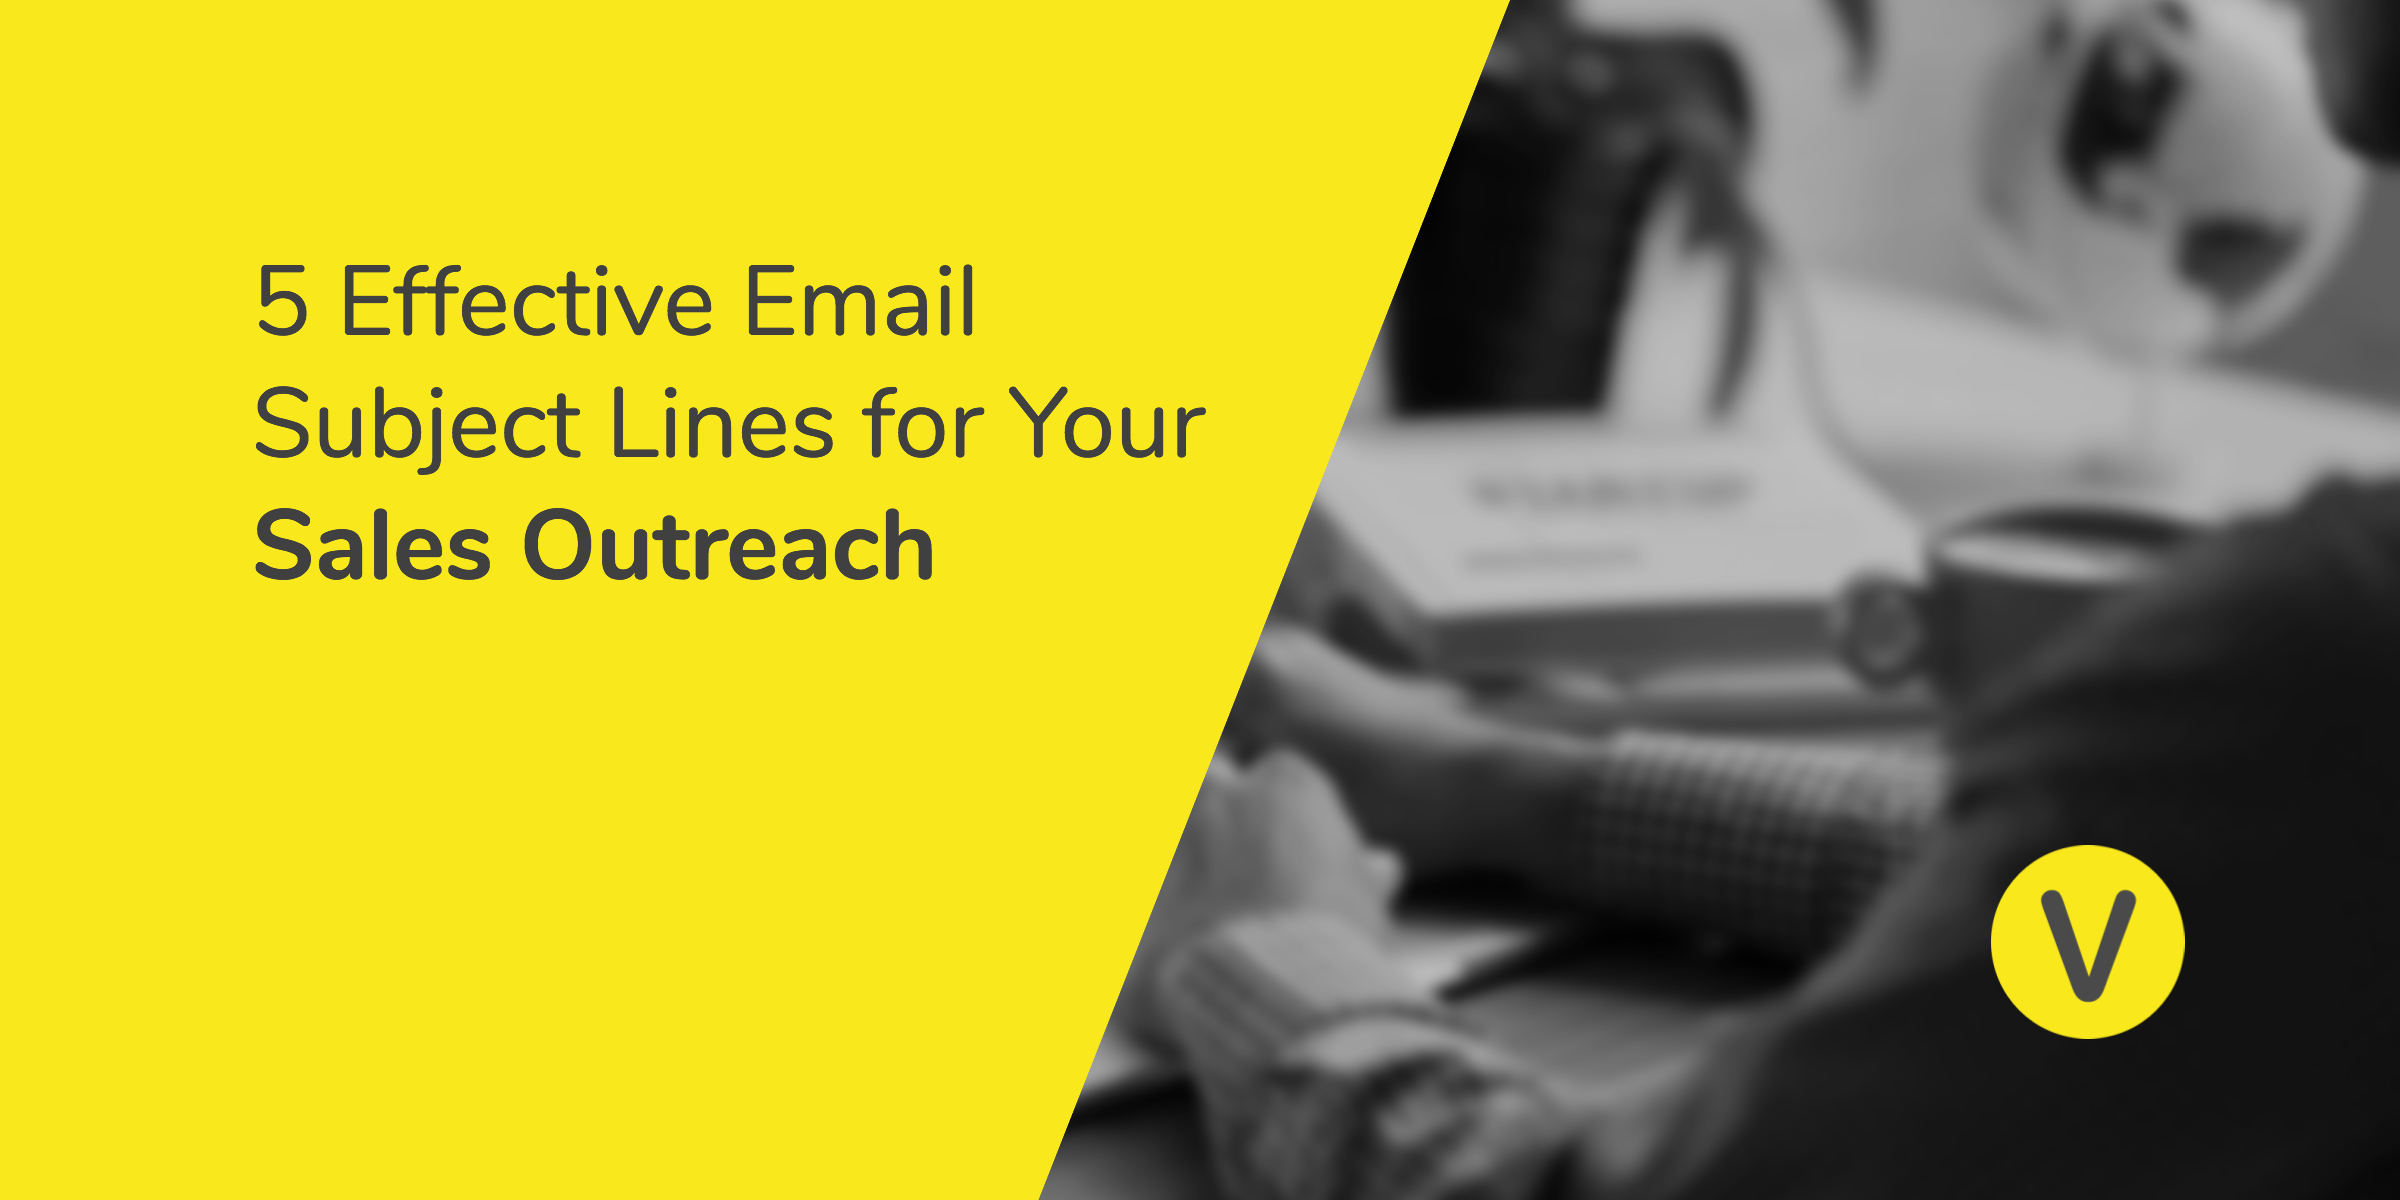 5 Effective Email Subject Lines for Your Sales Outreach